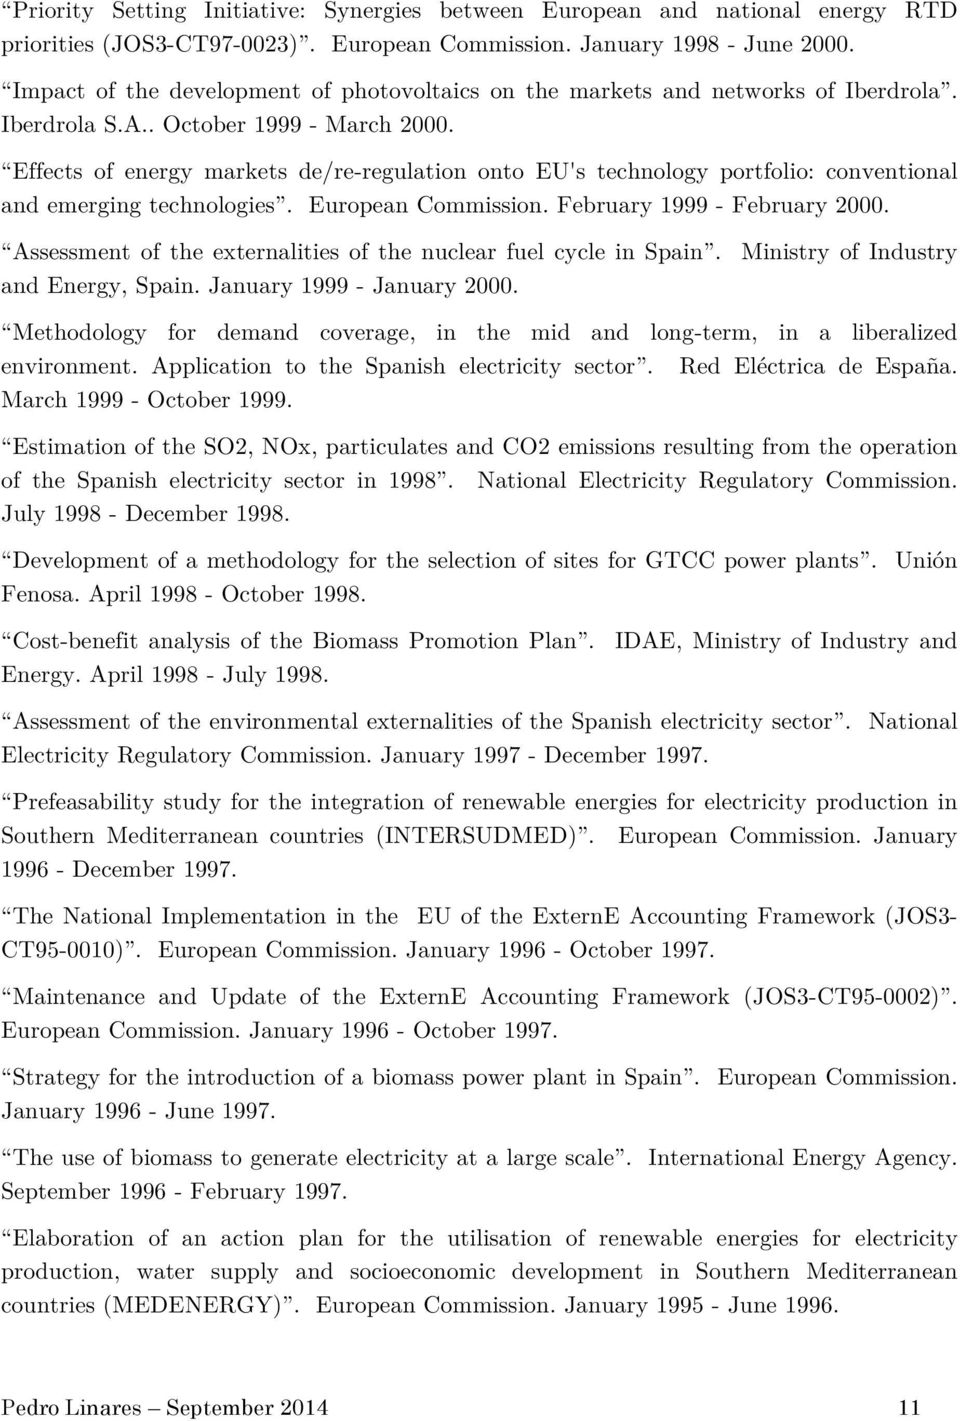 Effects of energy markets de/re-regulation onto EU's technology portfolio: conventional and emerging technologies. European Commission. February 1999 - February 2000.